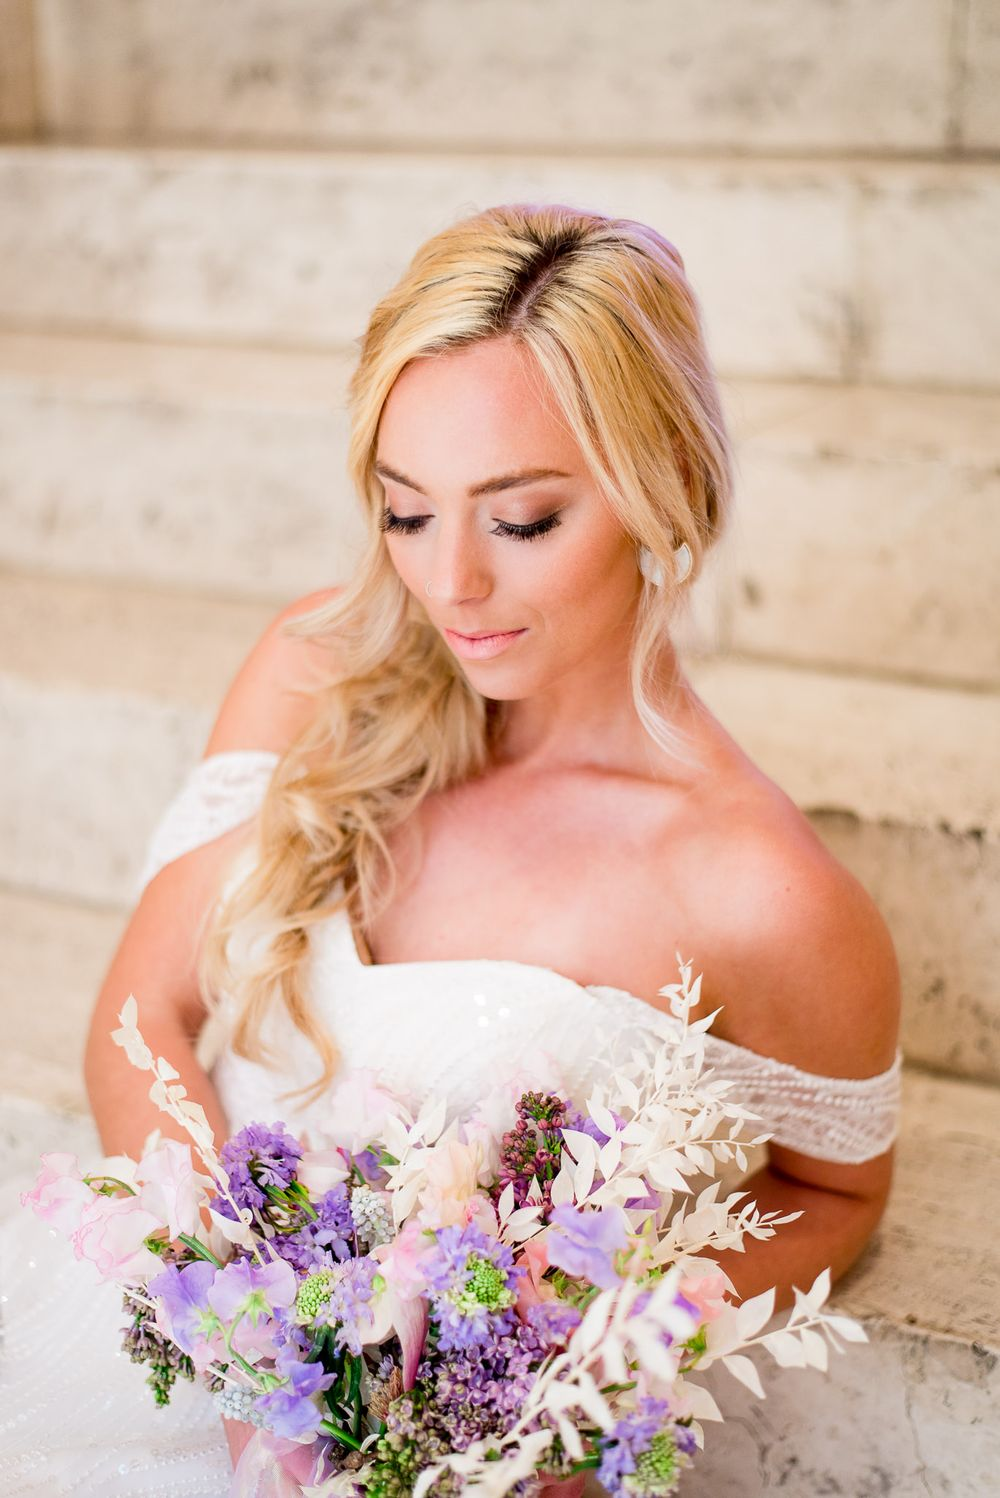 blonde bride with messy braid sitting on marble steps looking at pink purple white wedding bouquet